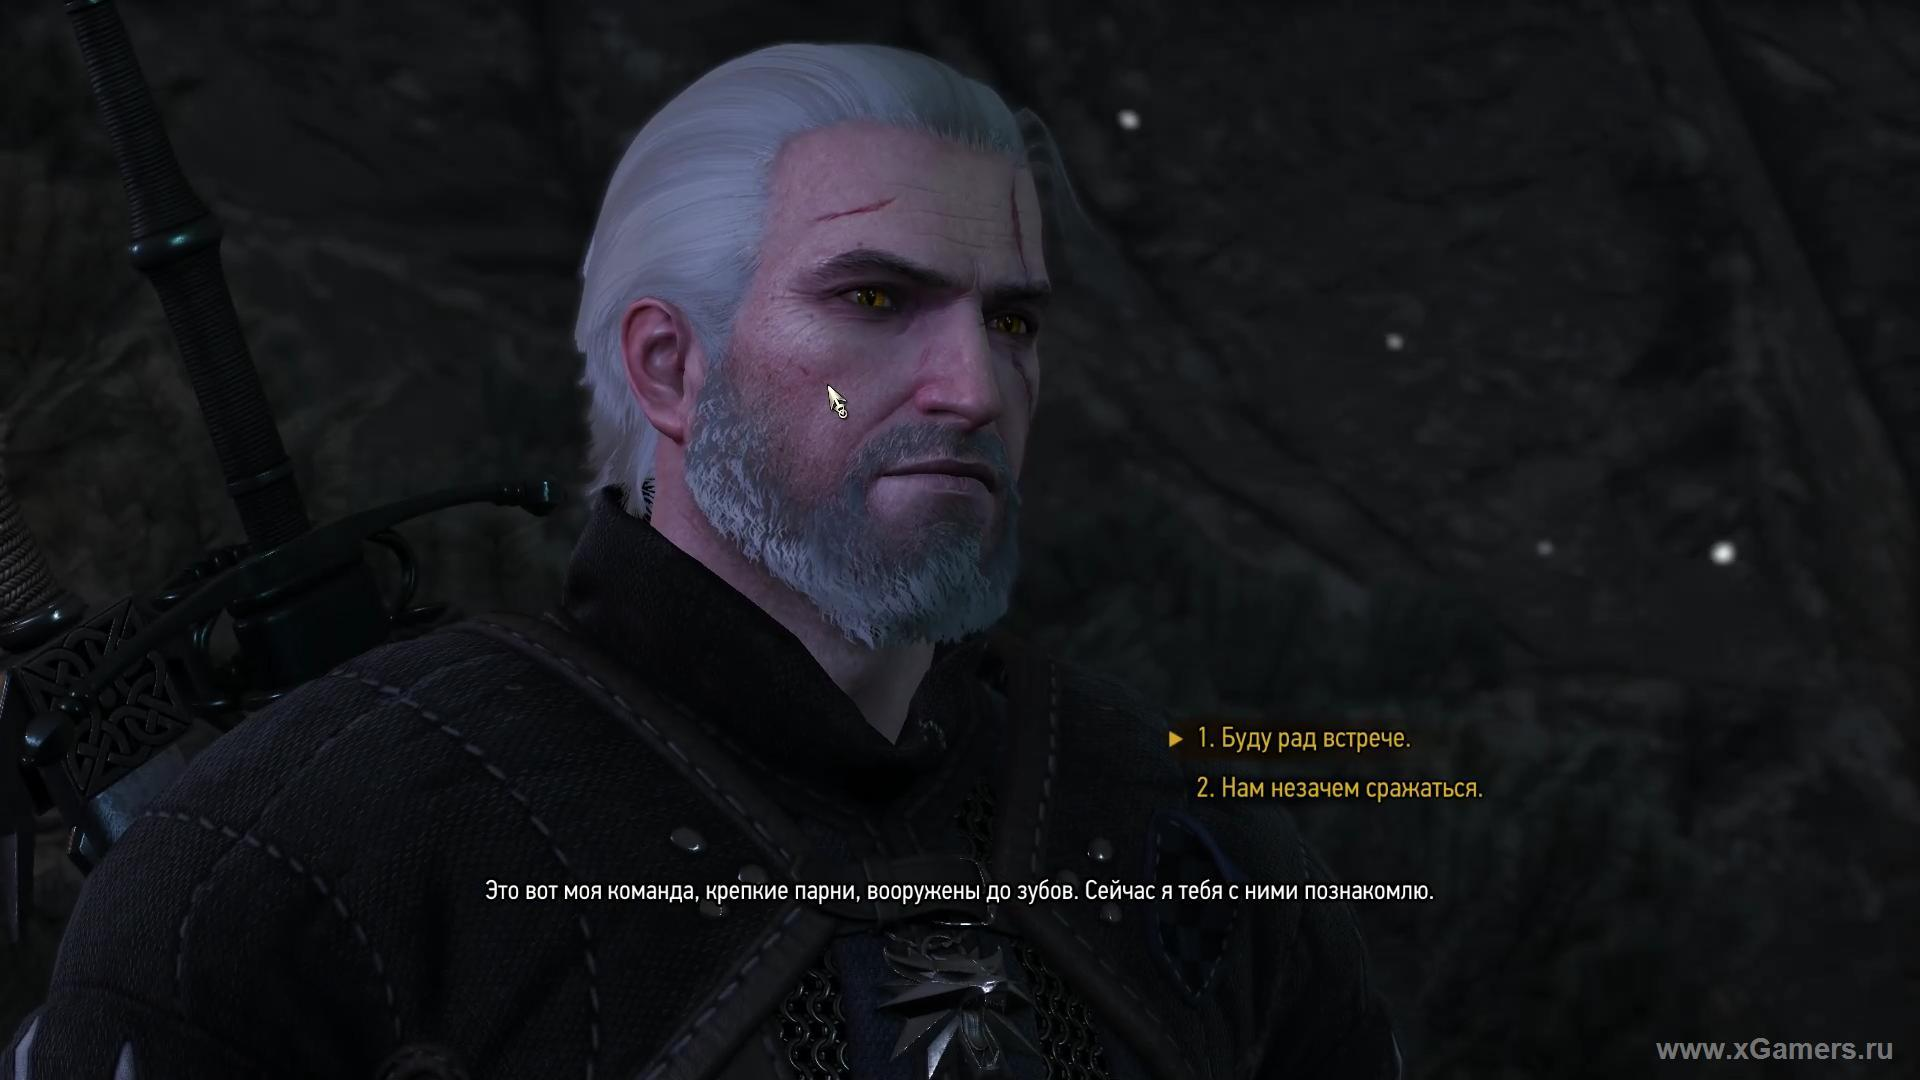 The Witcher 3 In the wolfs clothing - how to remove the curse